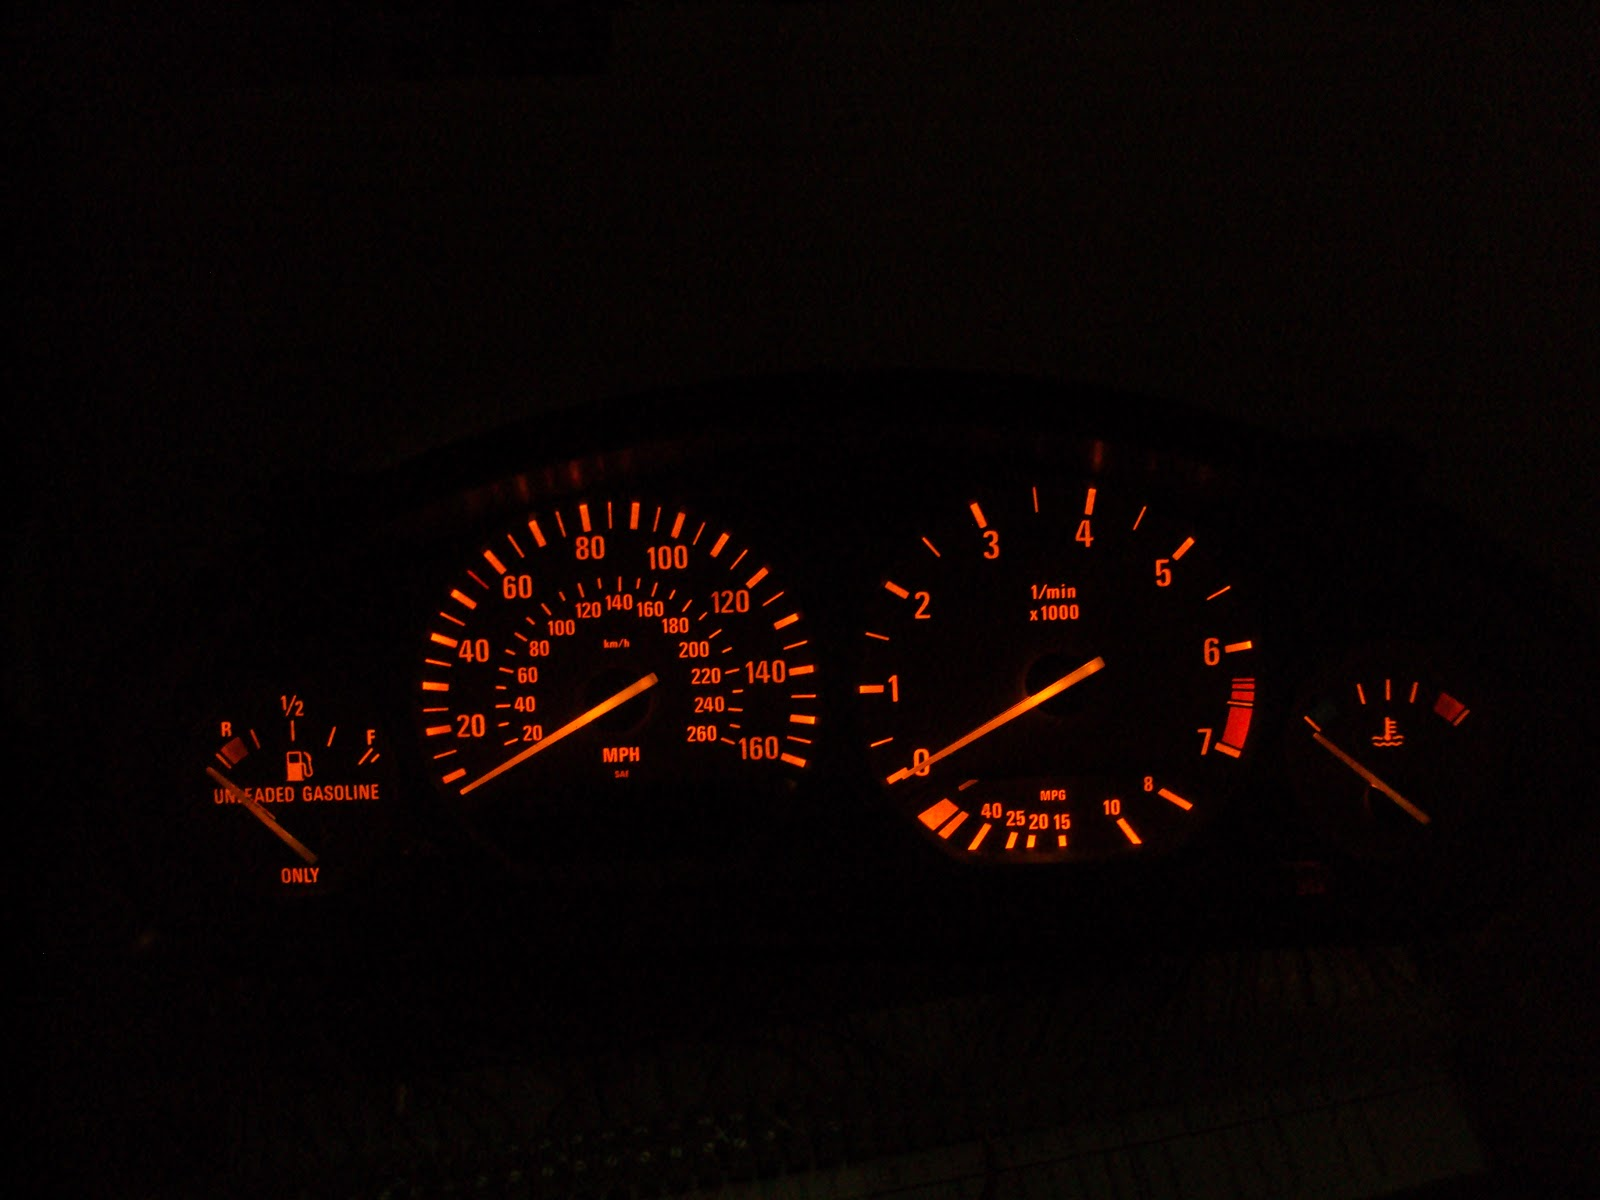 Showing the back lighted instrument cluster after connecting 12 volts to  CONN A pin 2 and ground to CONN B pin 3.